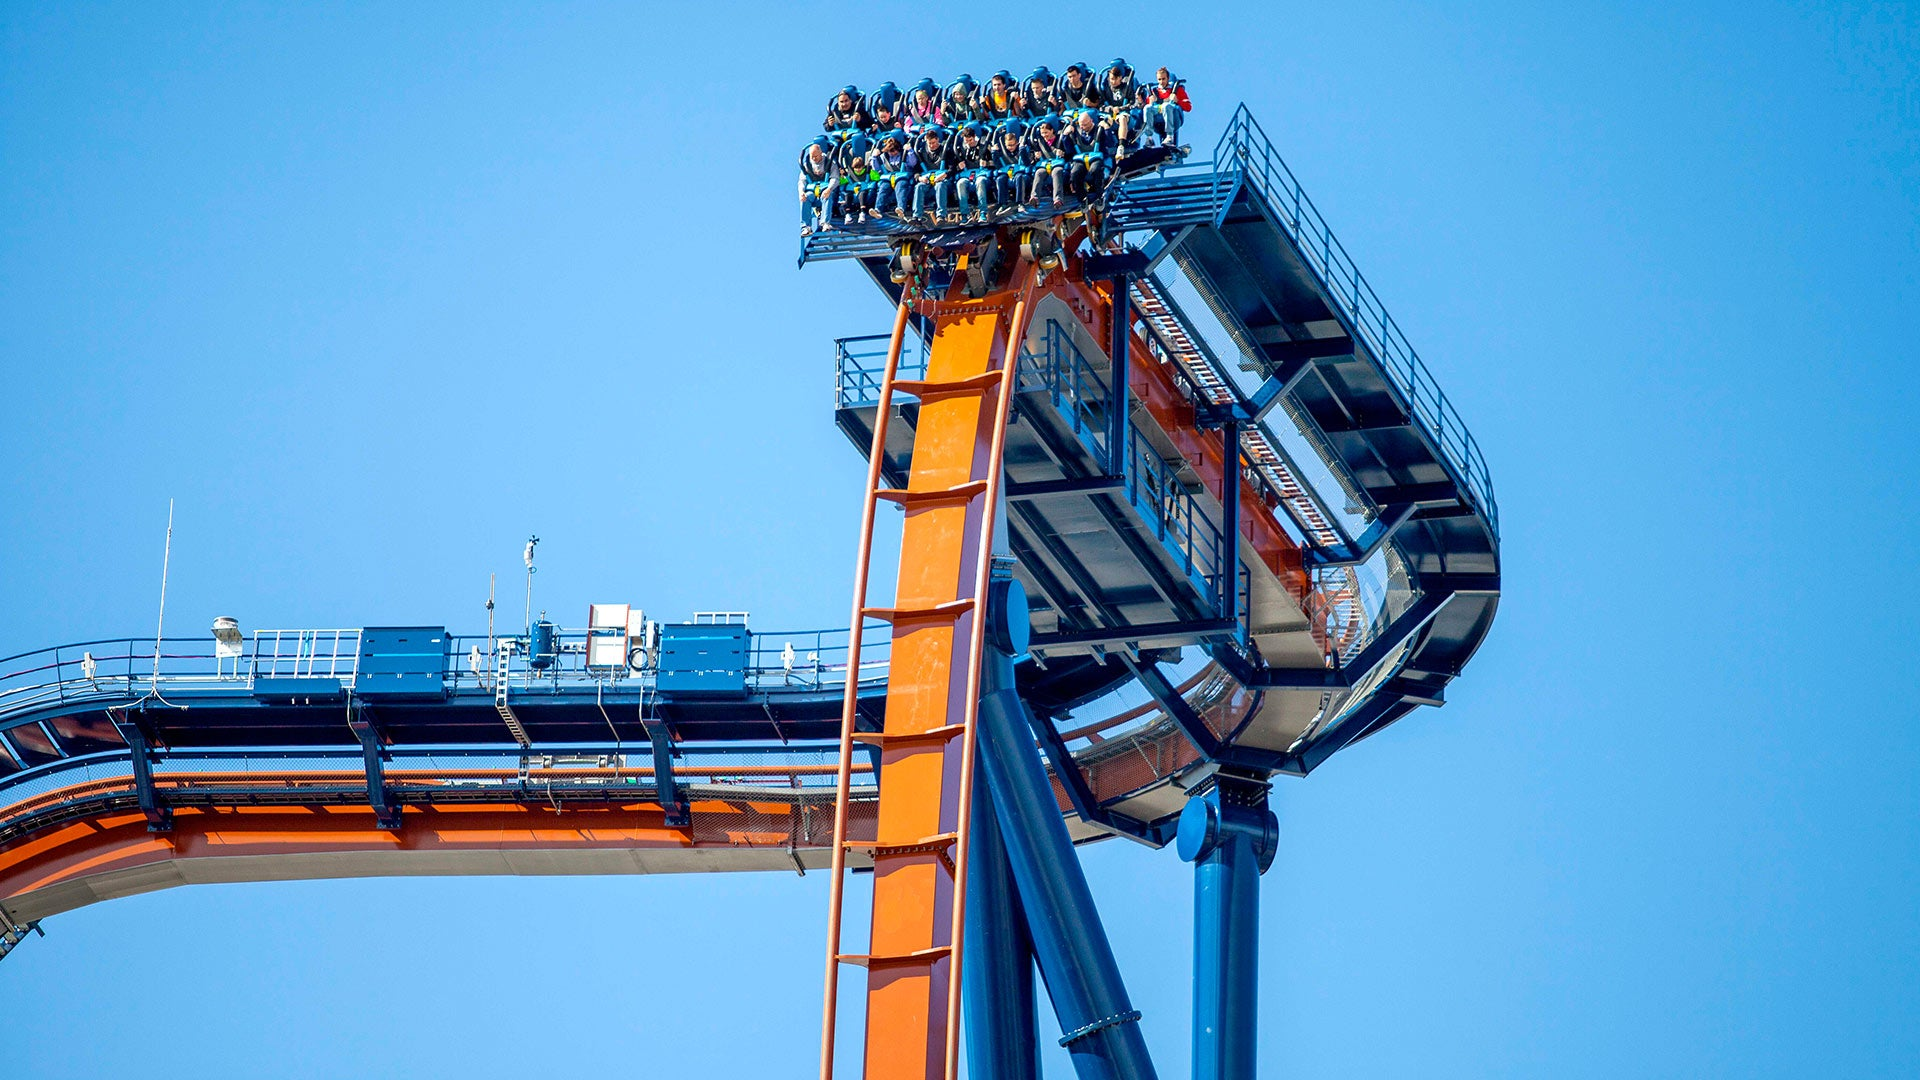 Dive coaster at Cedar Point in Ohio.